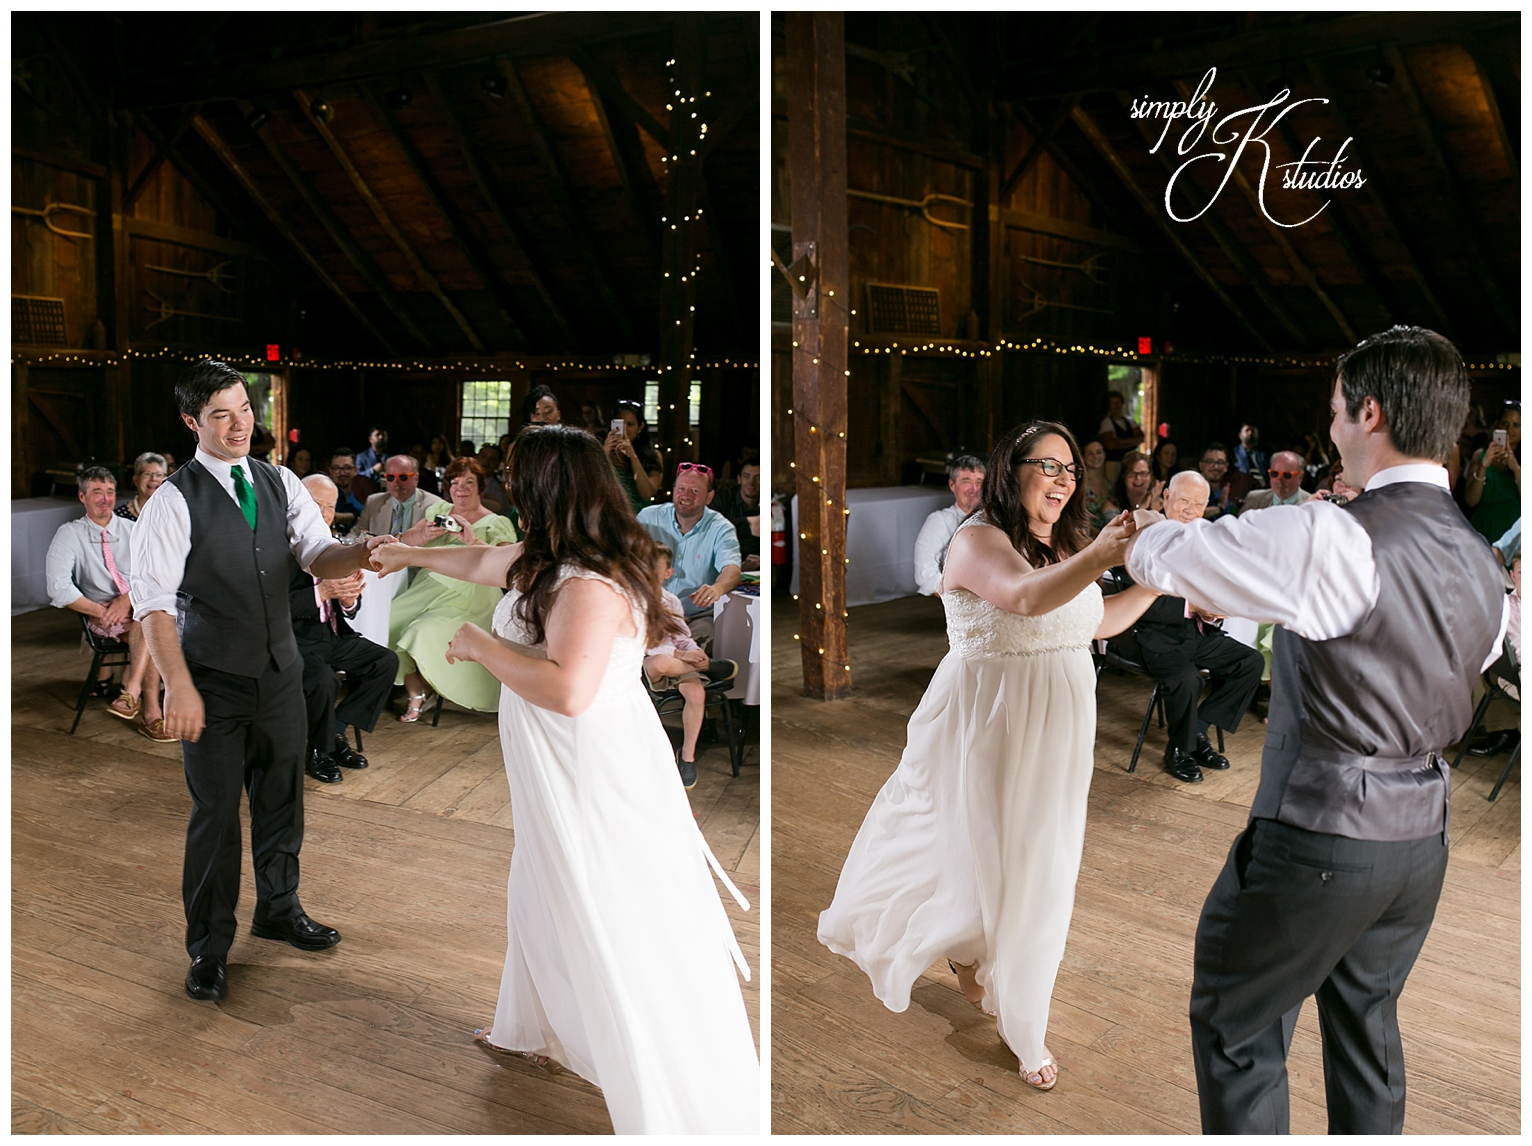 Rustic Weddings near Clinton CT.jpg